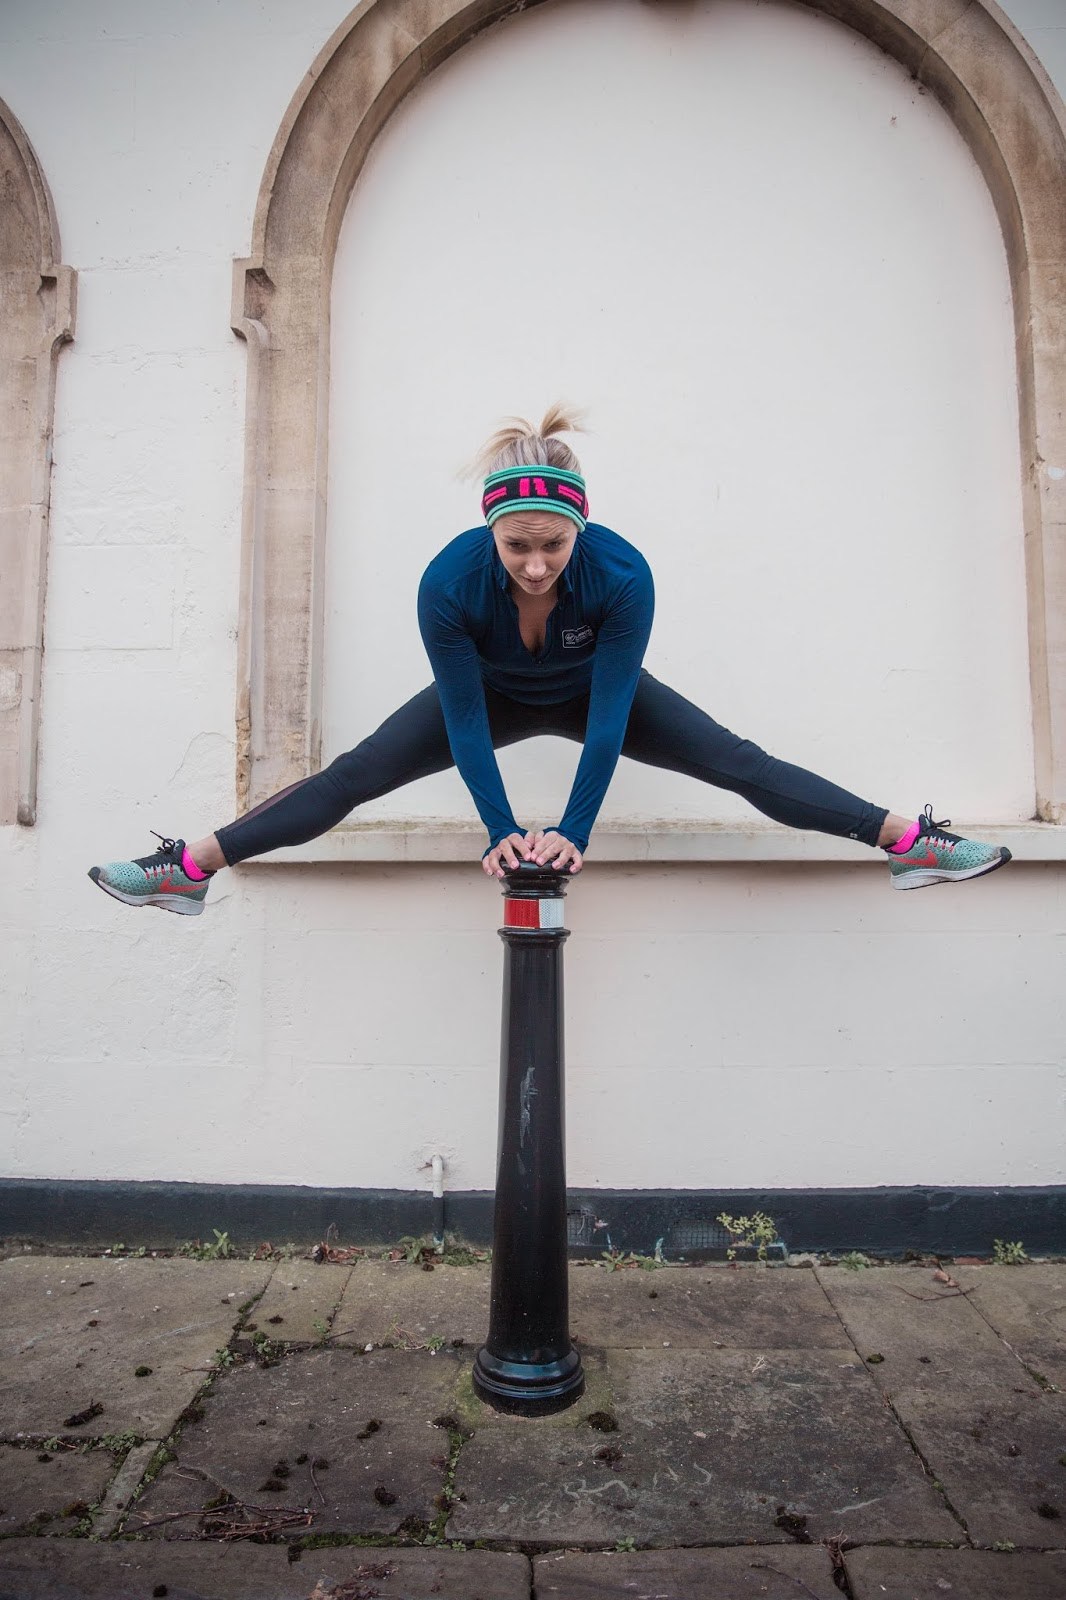 Rachel Emily Leaping over a bollard into 2020 - Rachel Emily Blog